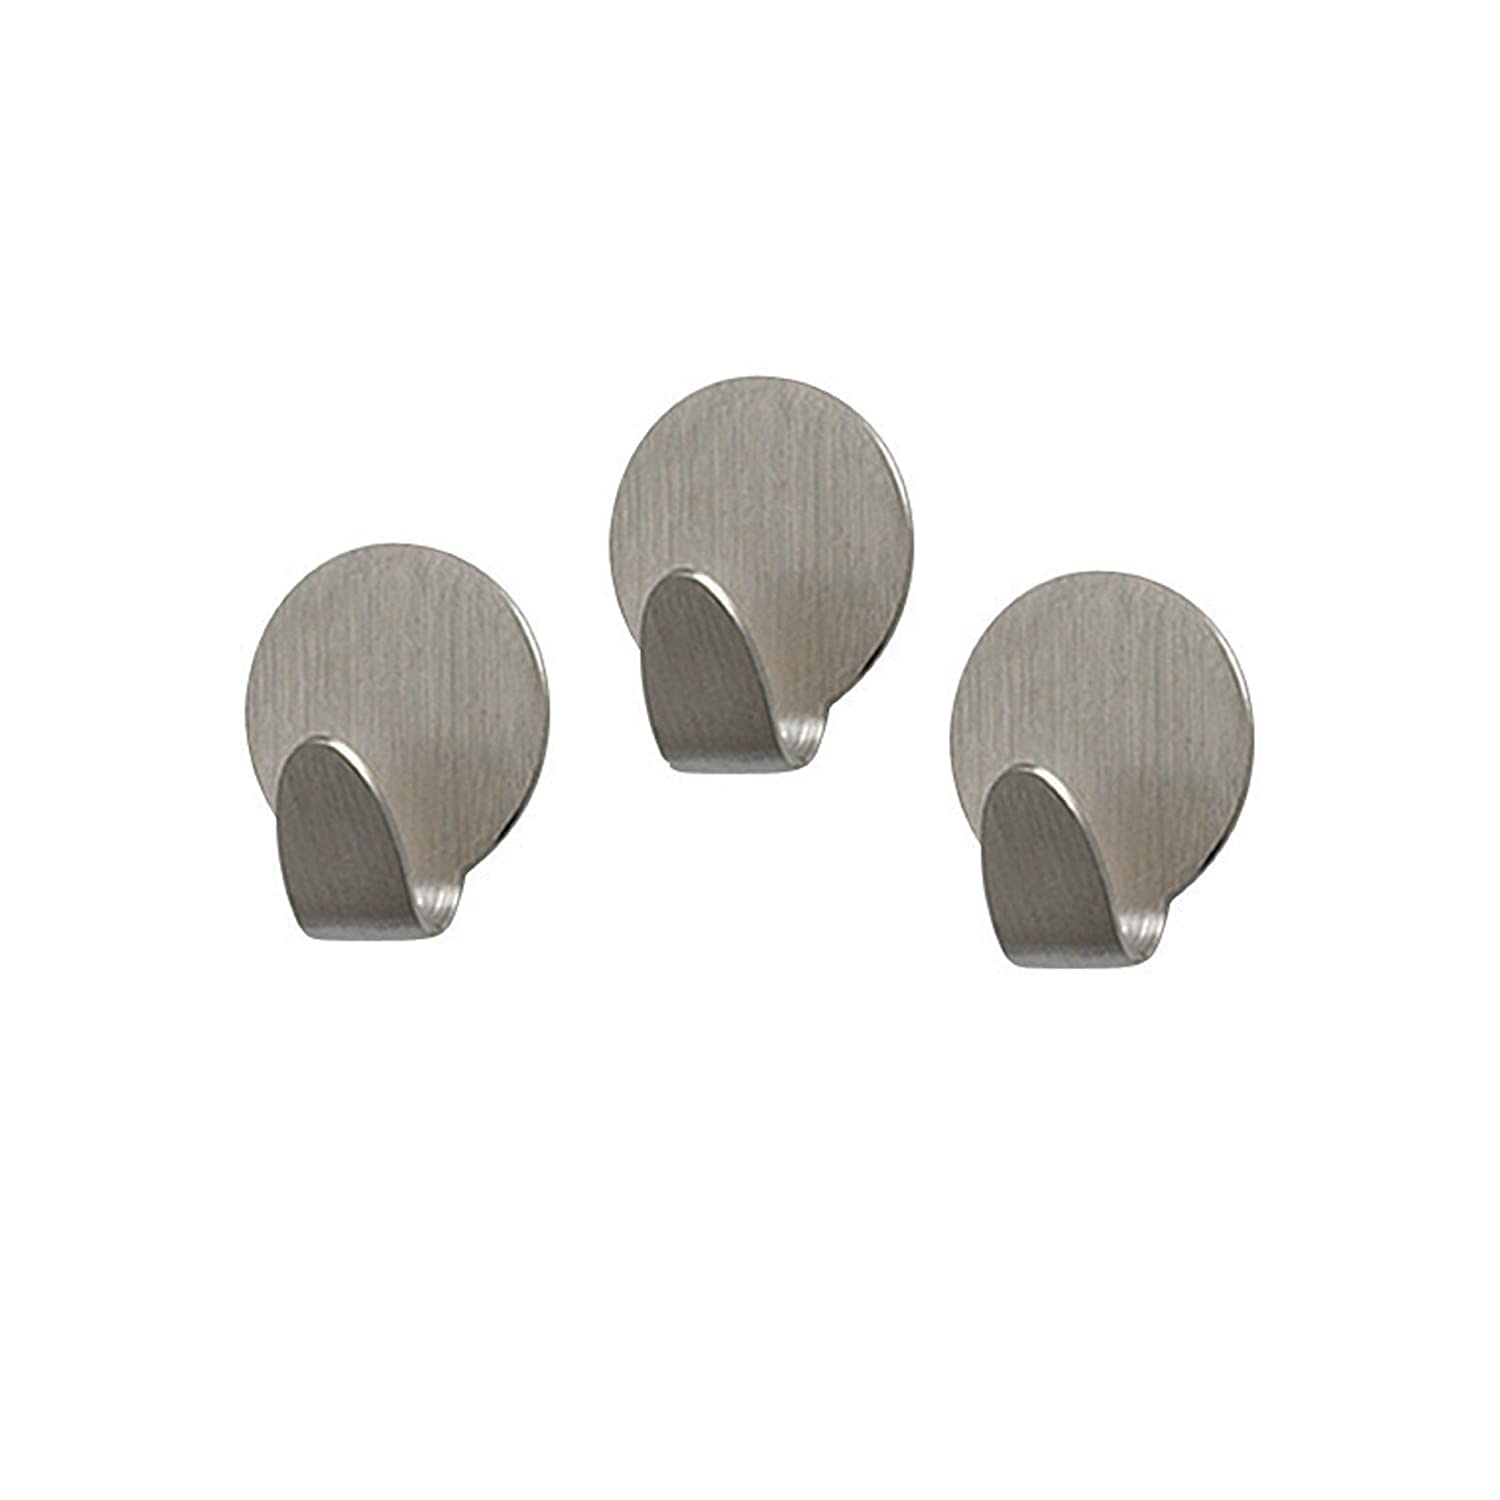 Spectrum Diversified Magnetic Medium Round Hooks, Set of 3, Brushed Nickel